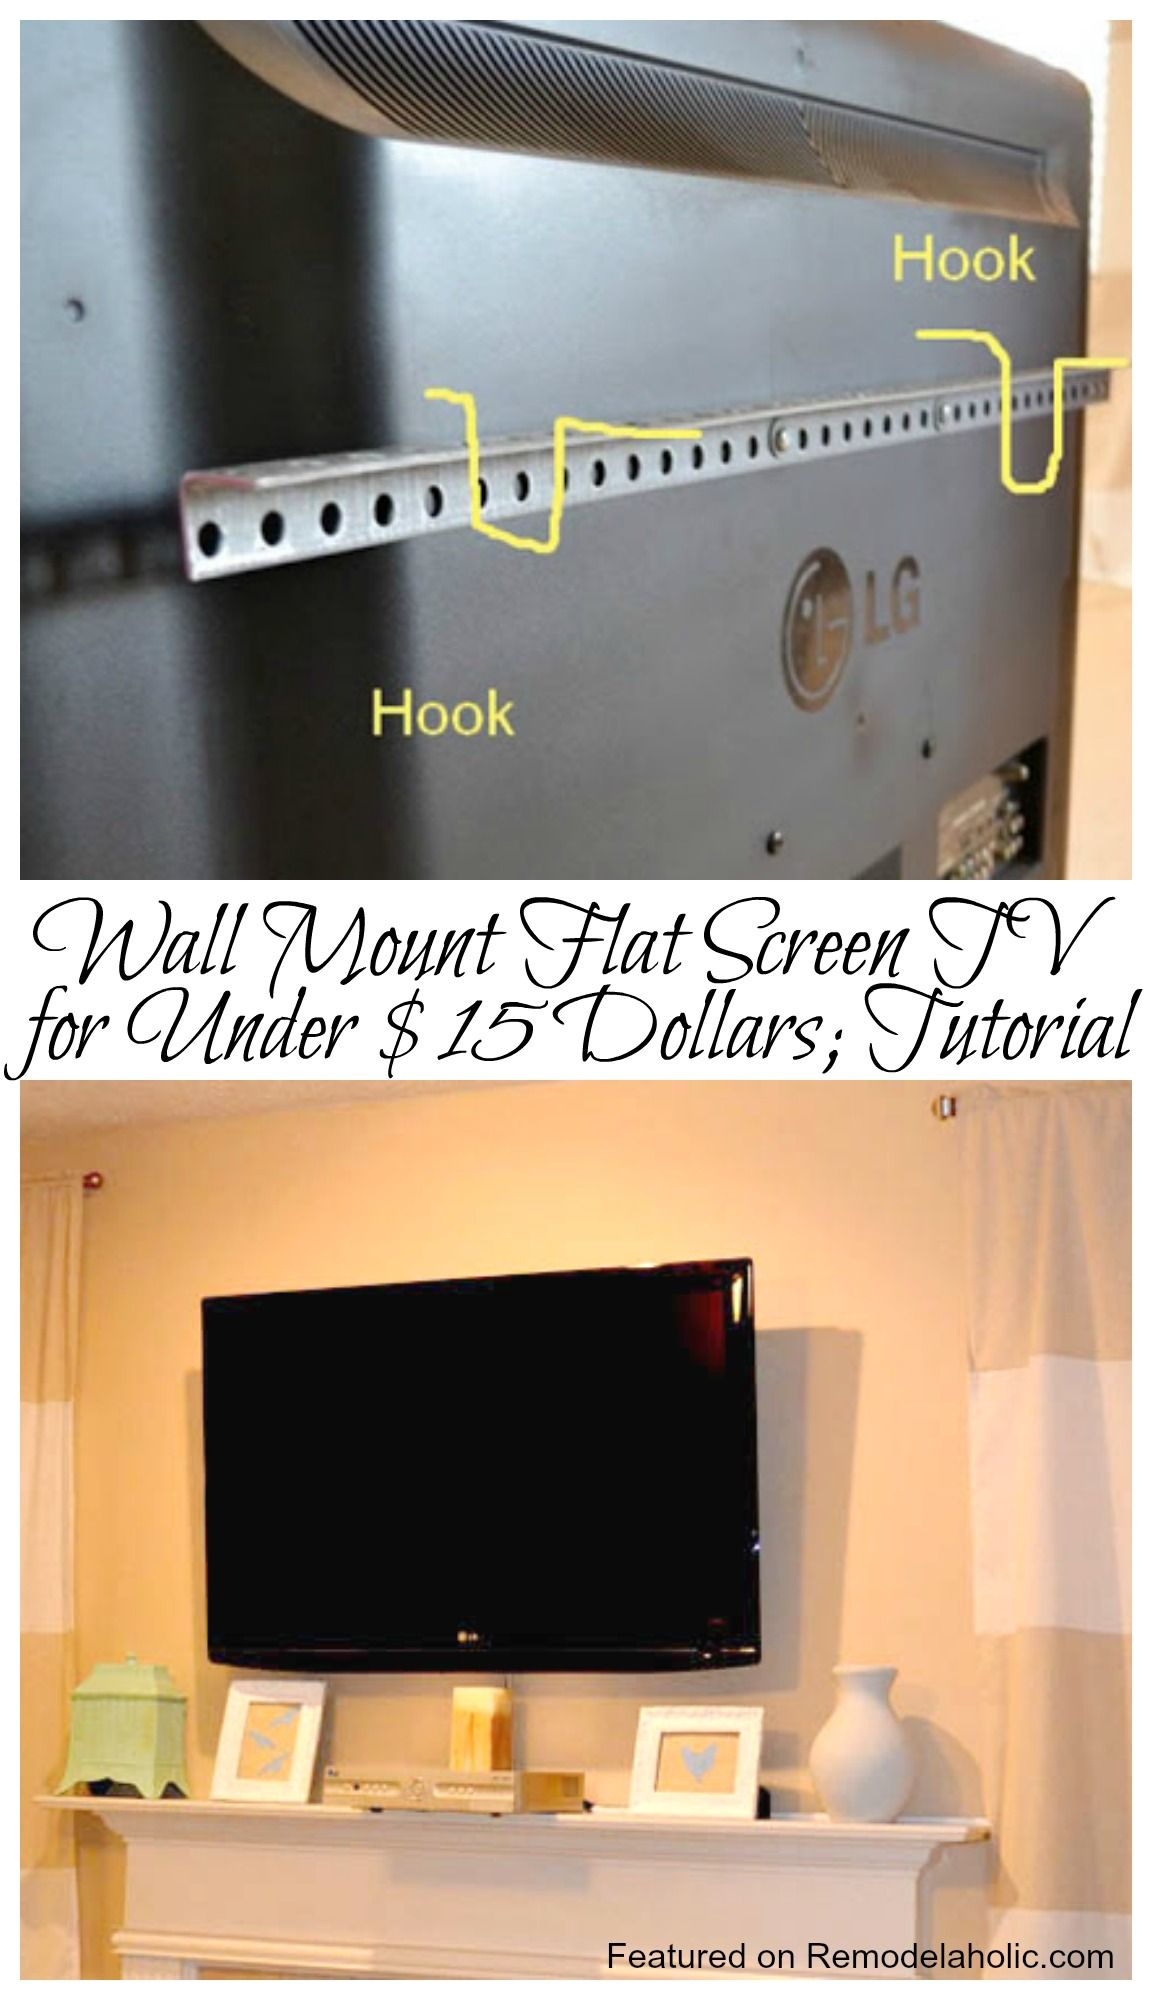 How To Wall Mount A Flat Screen Tv For Under 15 Dollars Tutorial